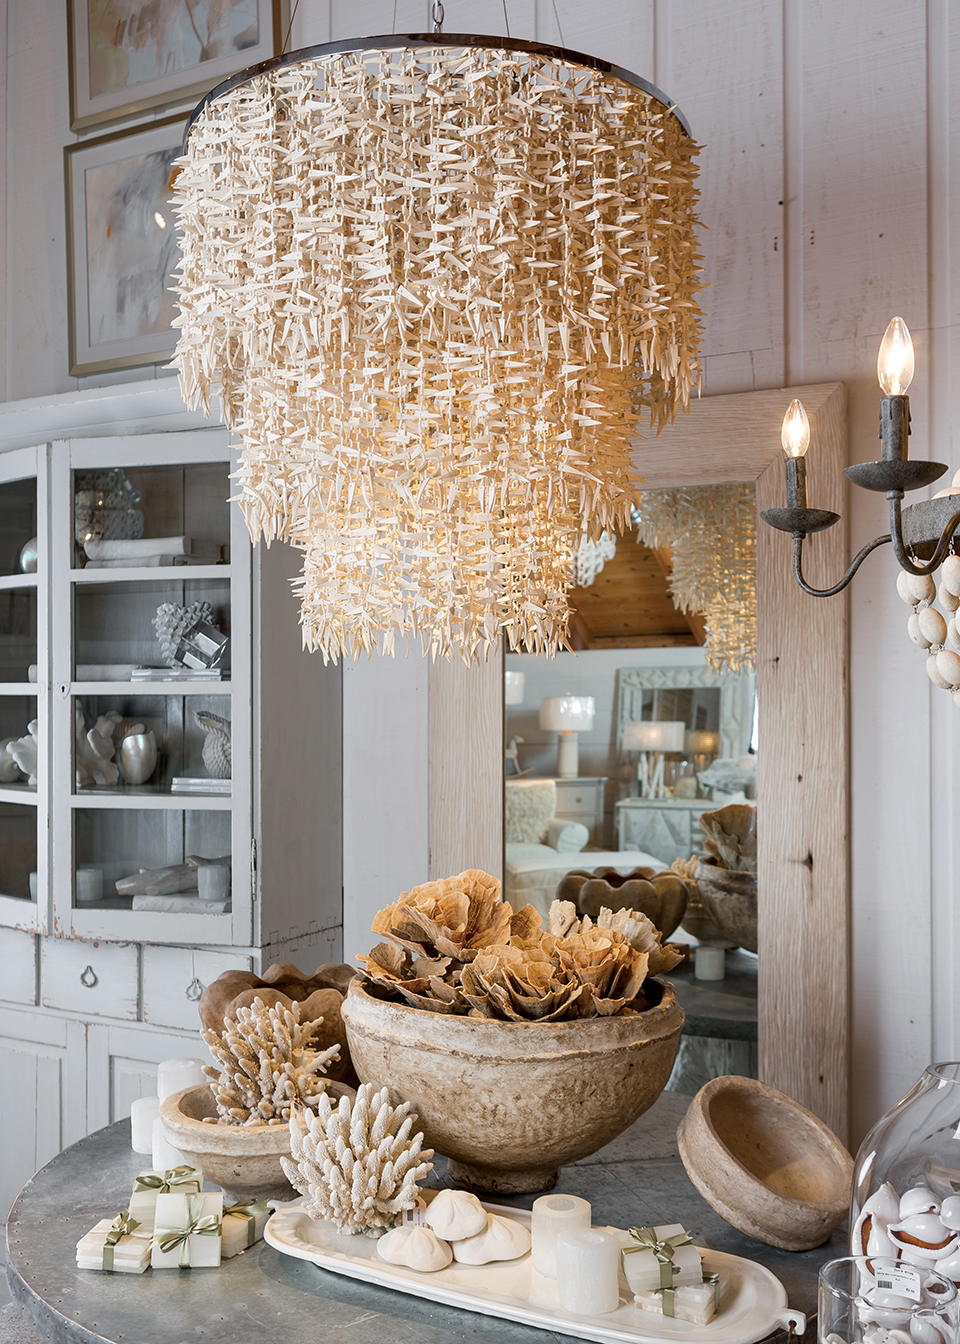 A white-washed space is punctuated by a shell chandelier and mollusk treasures. Photography by Duh for Home and Garden